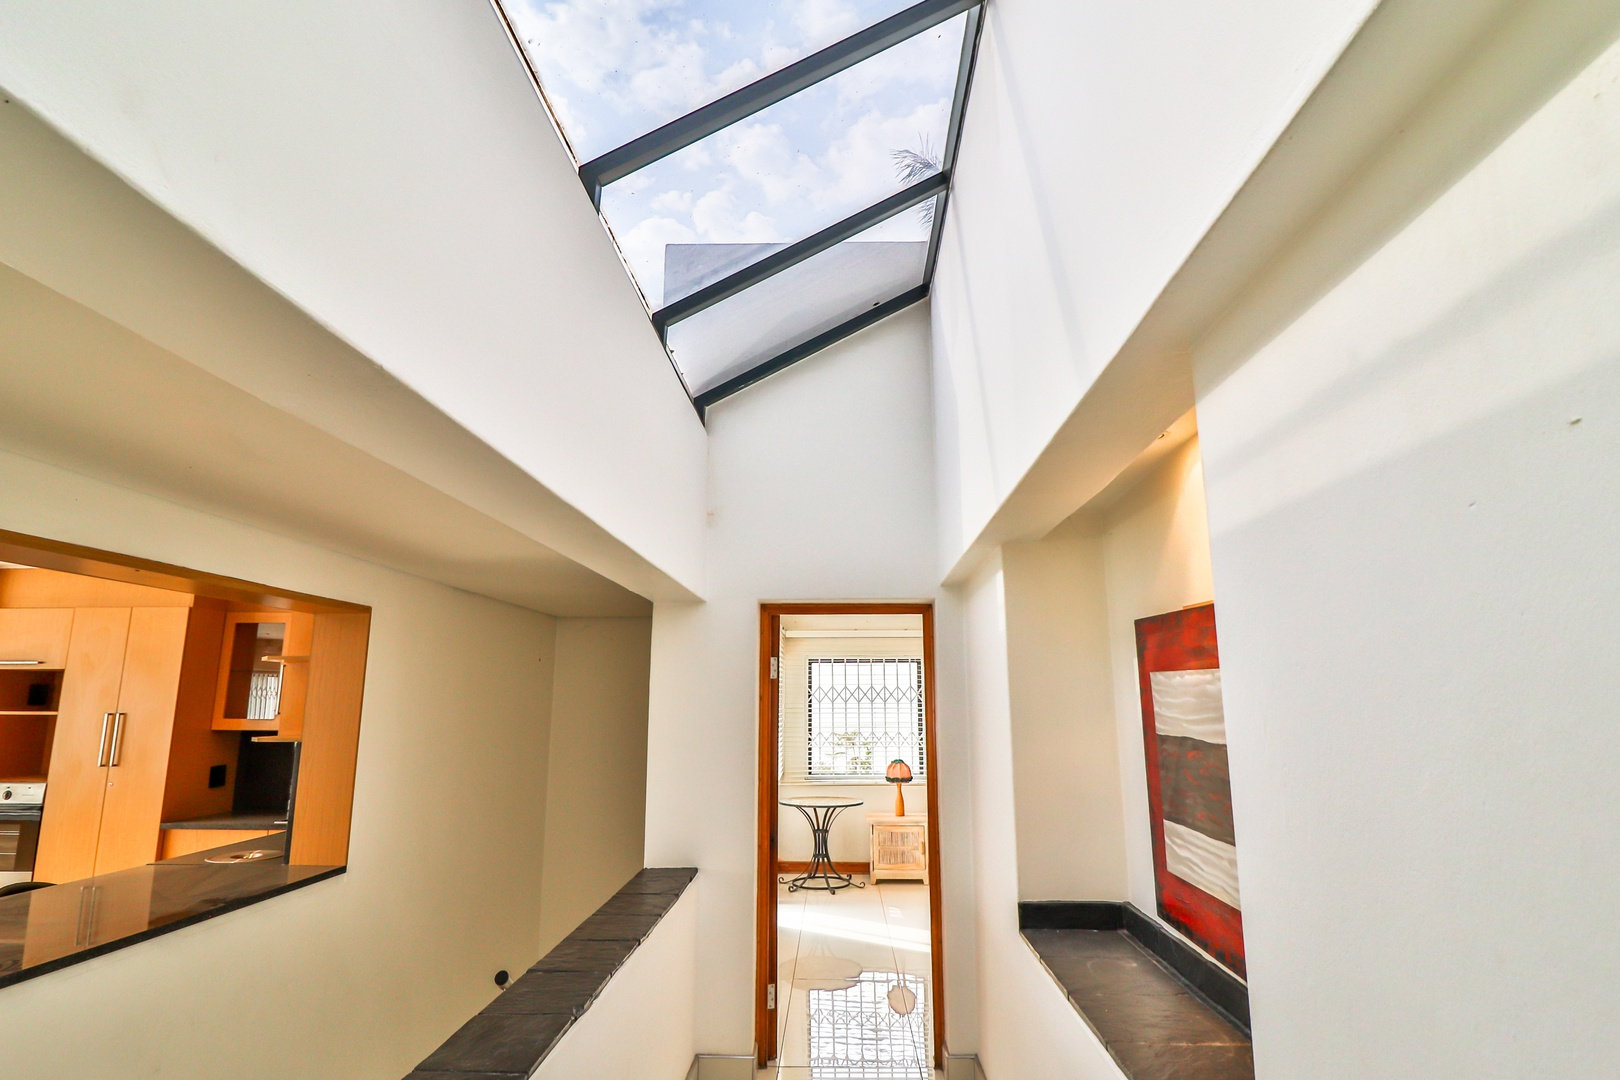 House in Kosmos Village - Passage from bedroom area is light and airy